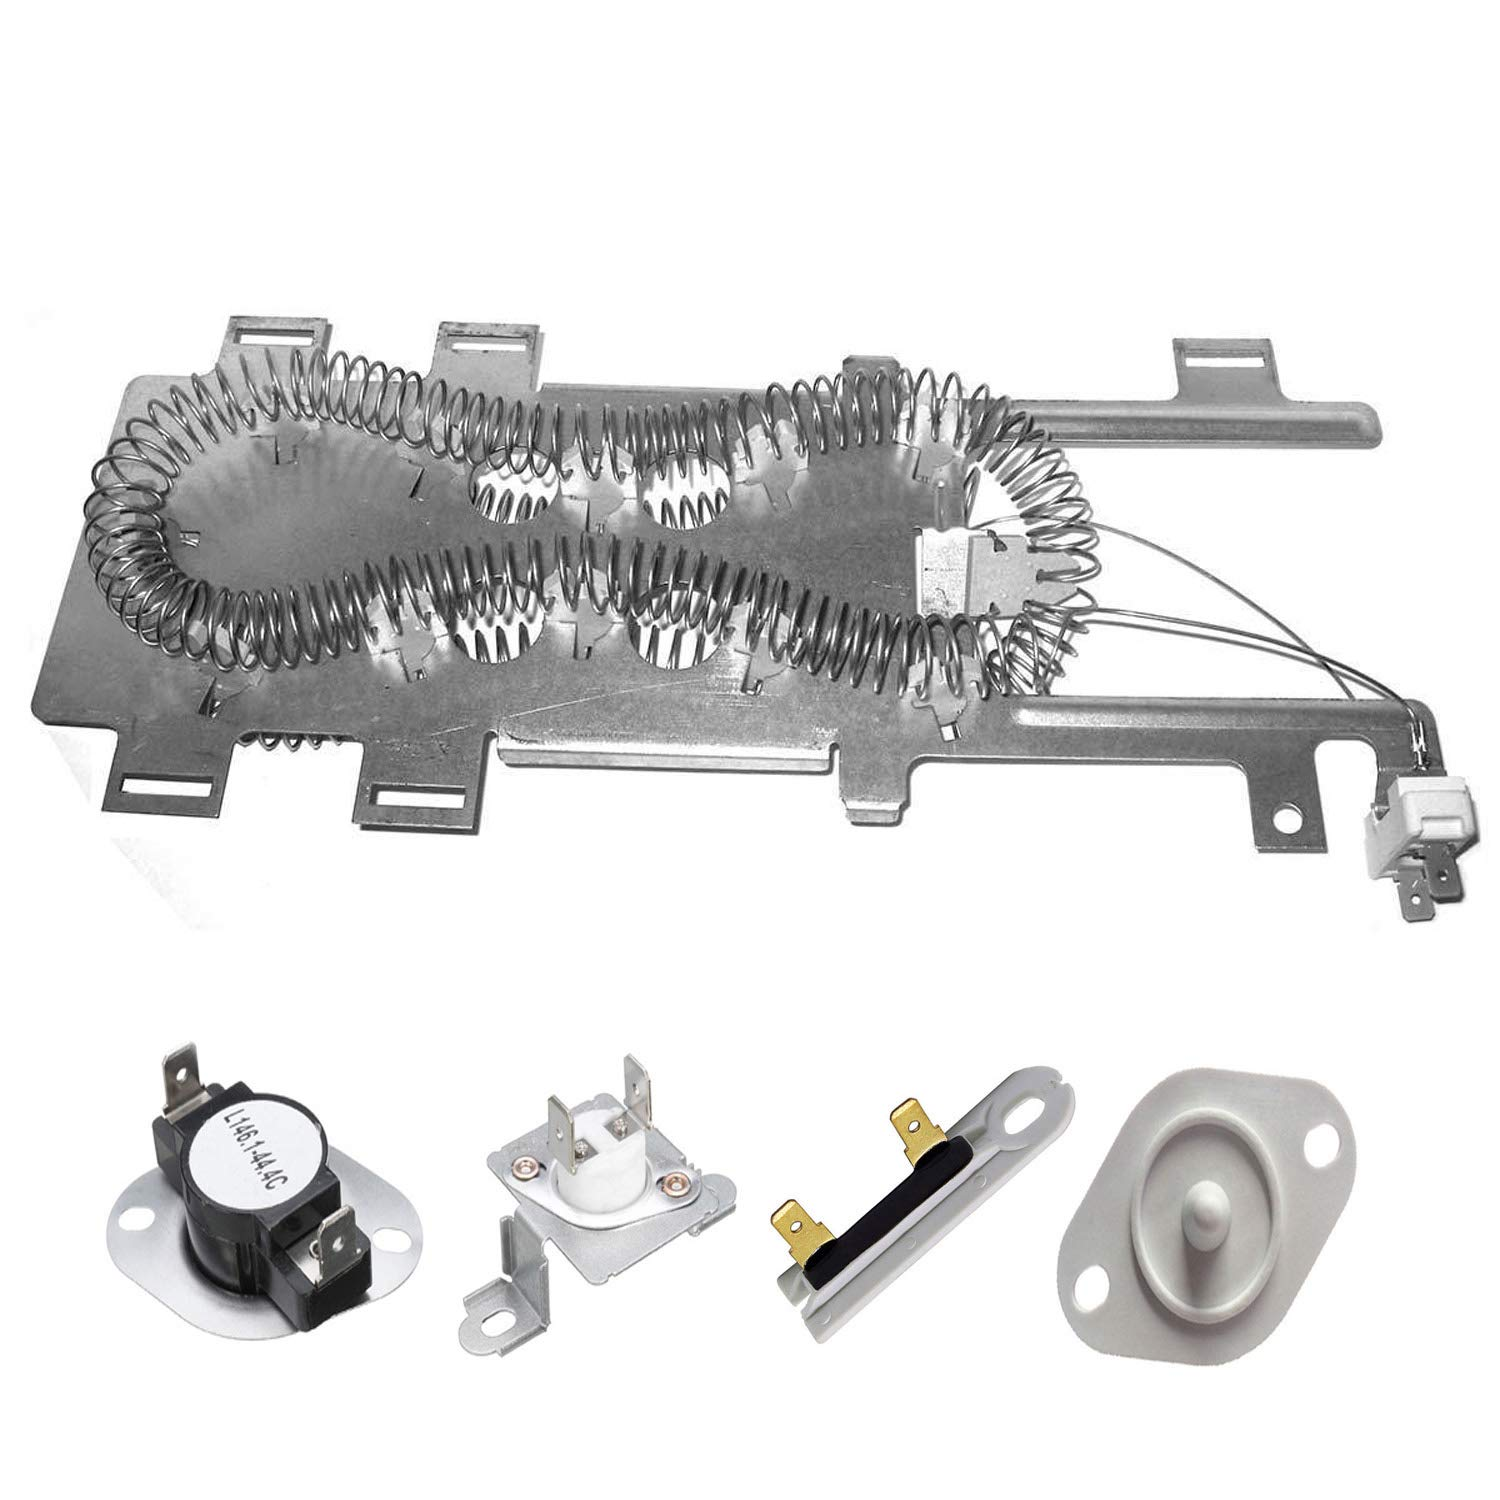 Siwdoy 8544771 279973 3392519 8577274 Duet Dryer Heating Element Thermal Cut Off Kit with Thermistor & Thermal Fuse for Whirlpool Kenmore Maytag Dryers